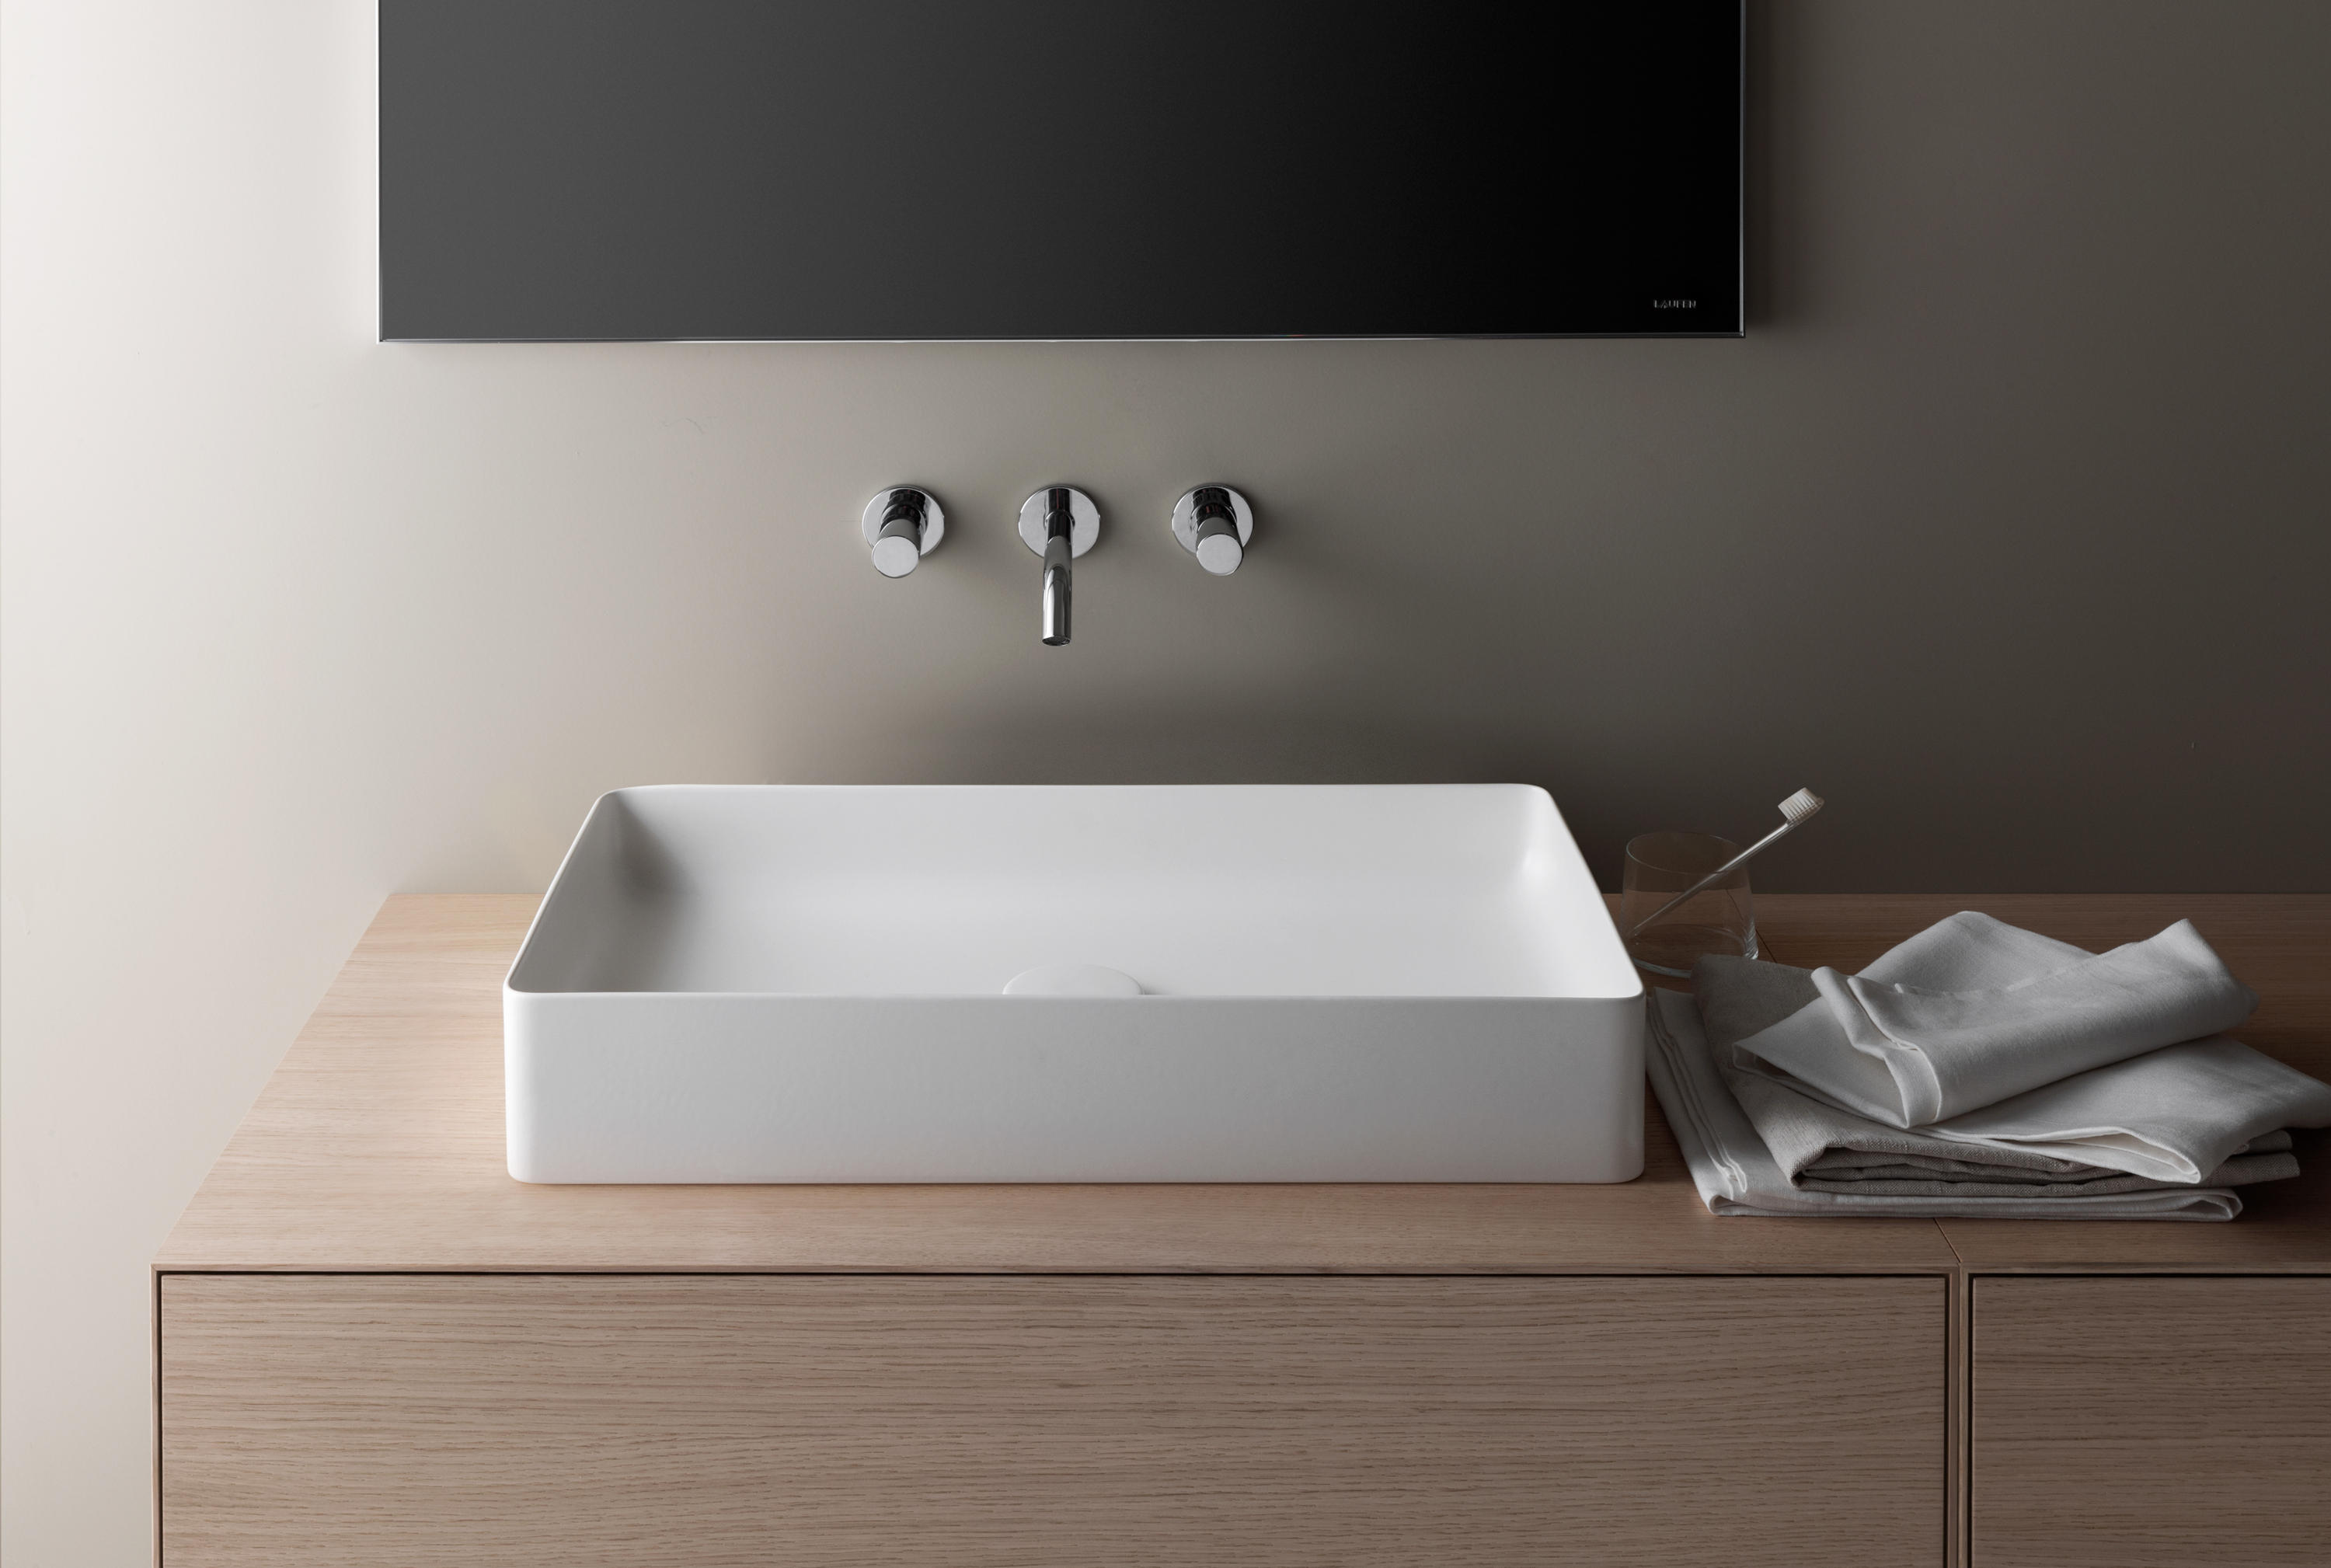 Aufsatzwaschbecken Wien Living Square Washbasin Bowl Wash Basins From Laufen Architonic